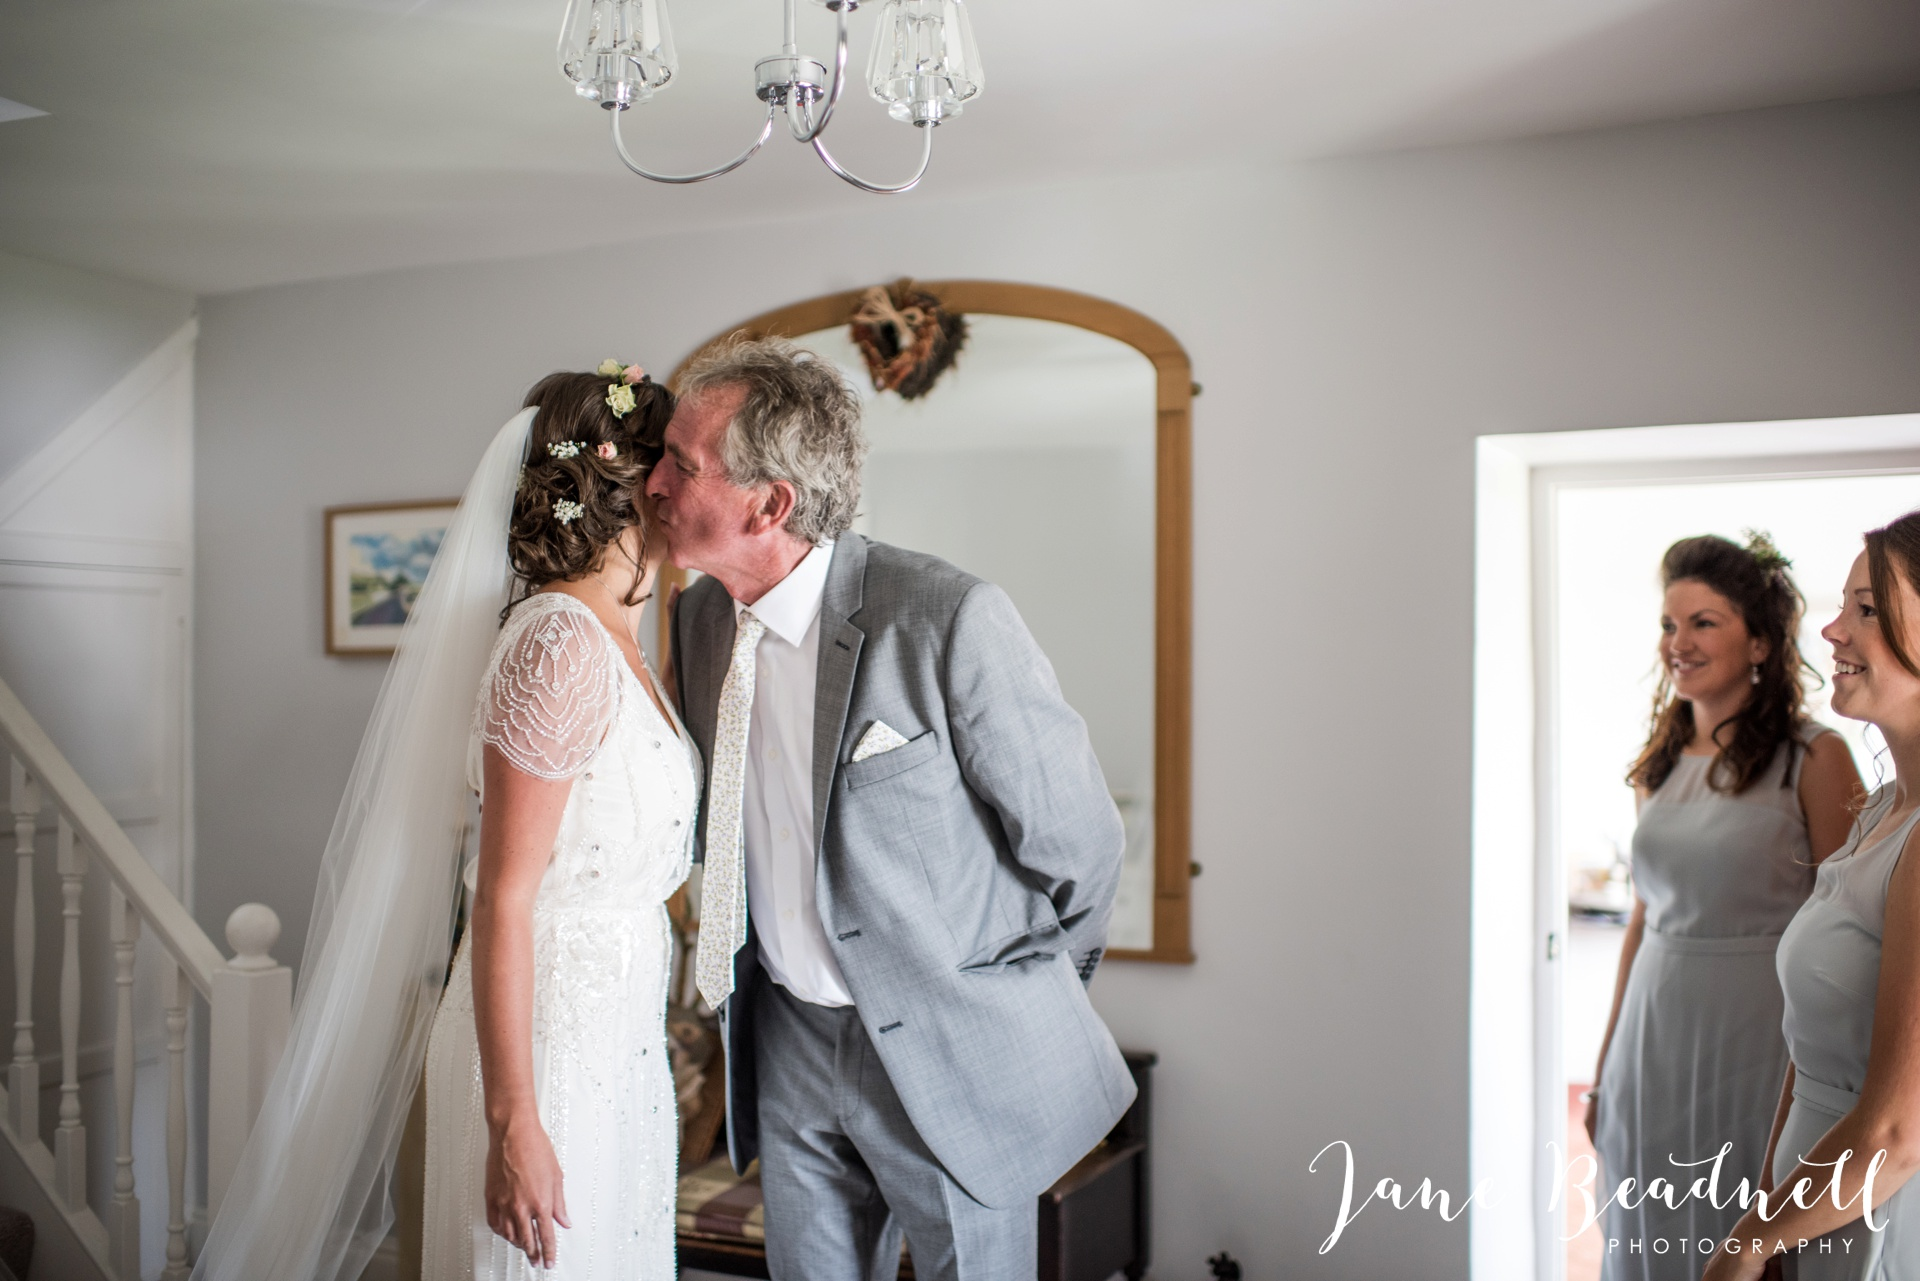 Jane Beadnell fine art wedding photographer Leeds_0019